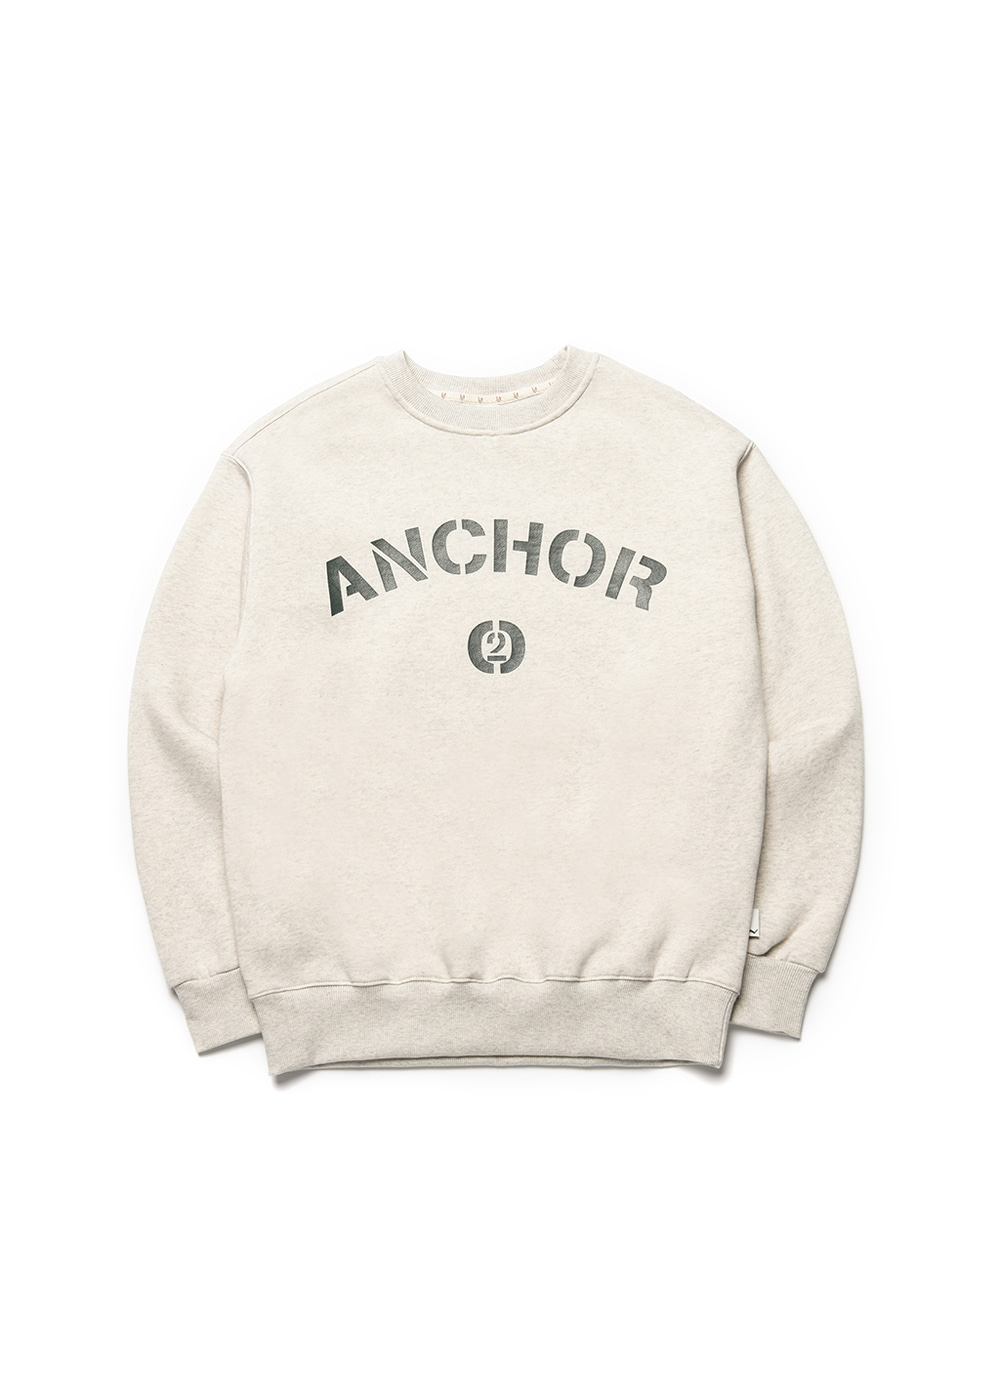 Anchor sweat shirt [oatmeal]